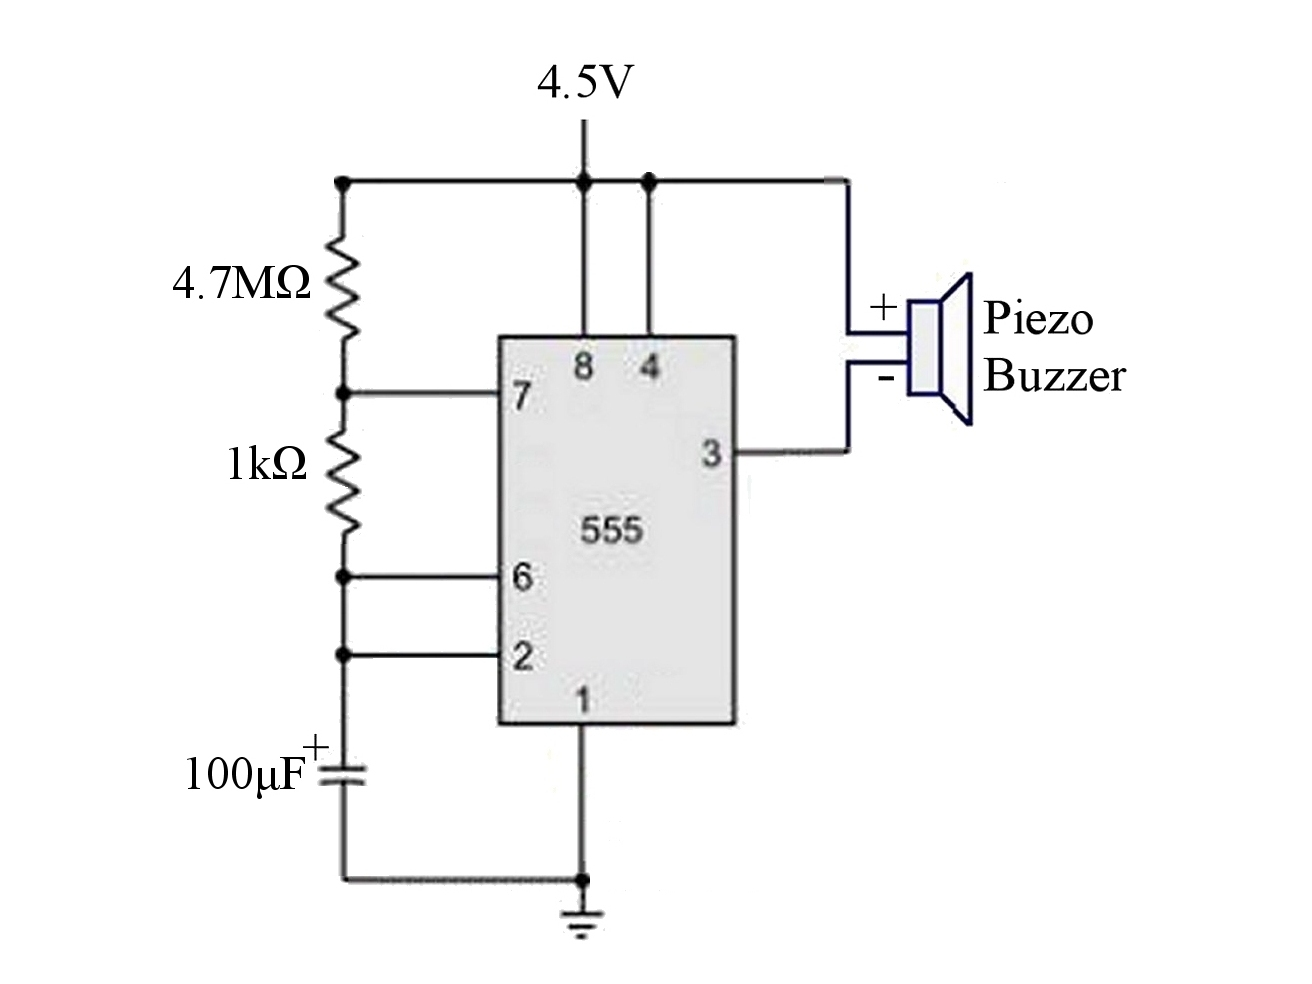 Piezo Buzzer Circuit Diagram Expert Schematics Wiring 1 99 5vac Breadboard Compatible Tinkersphere Otherwise